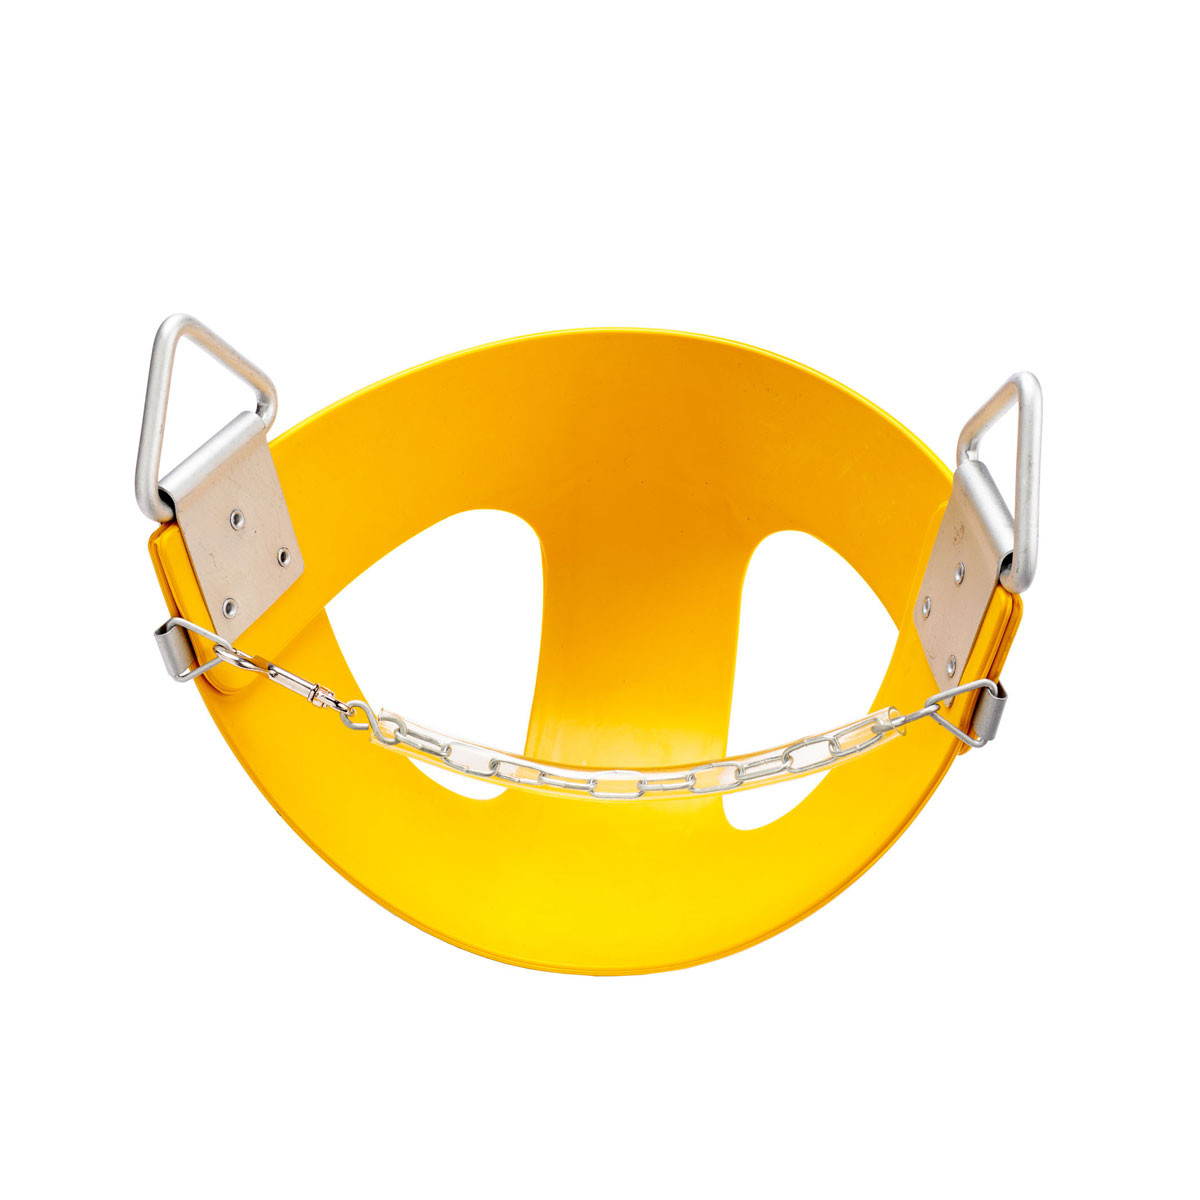 Commercial Rubber Half Bucket Swing Seat - Yellow